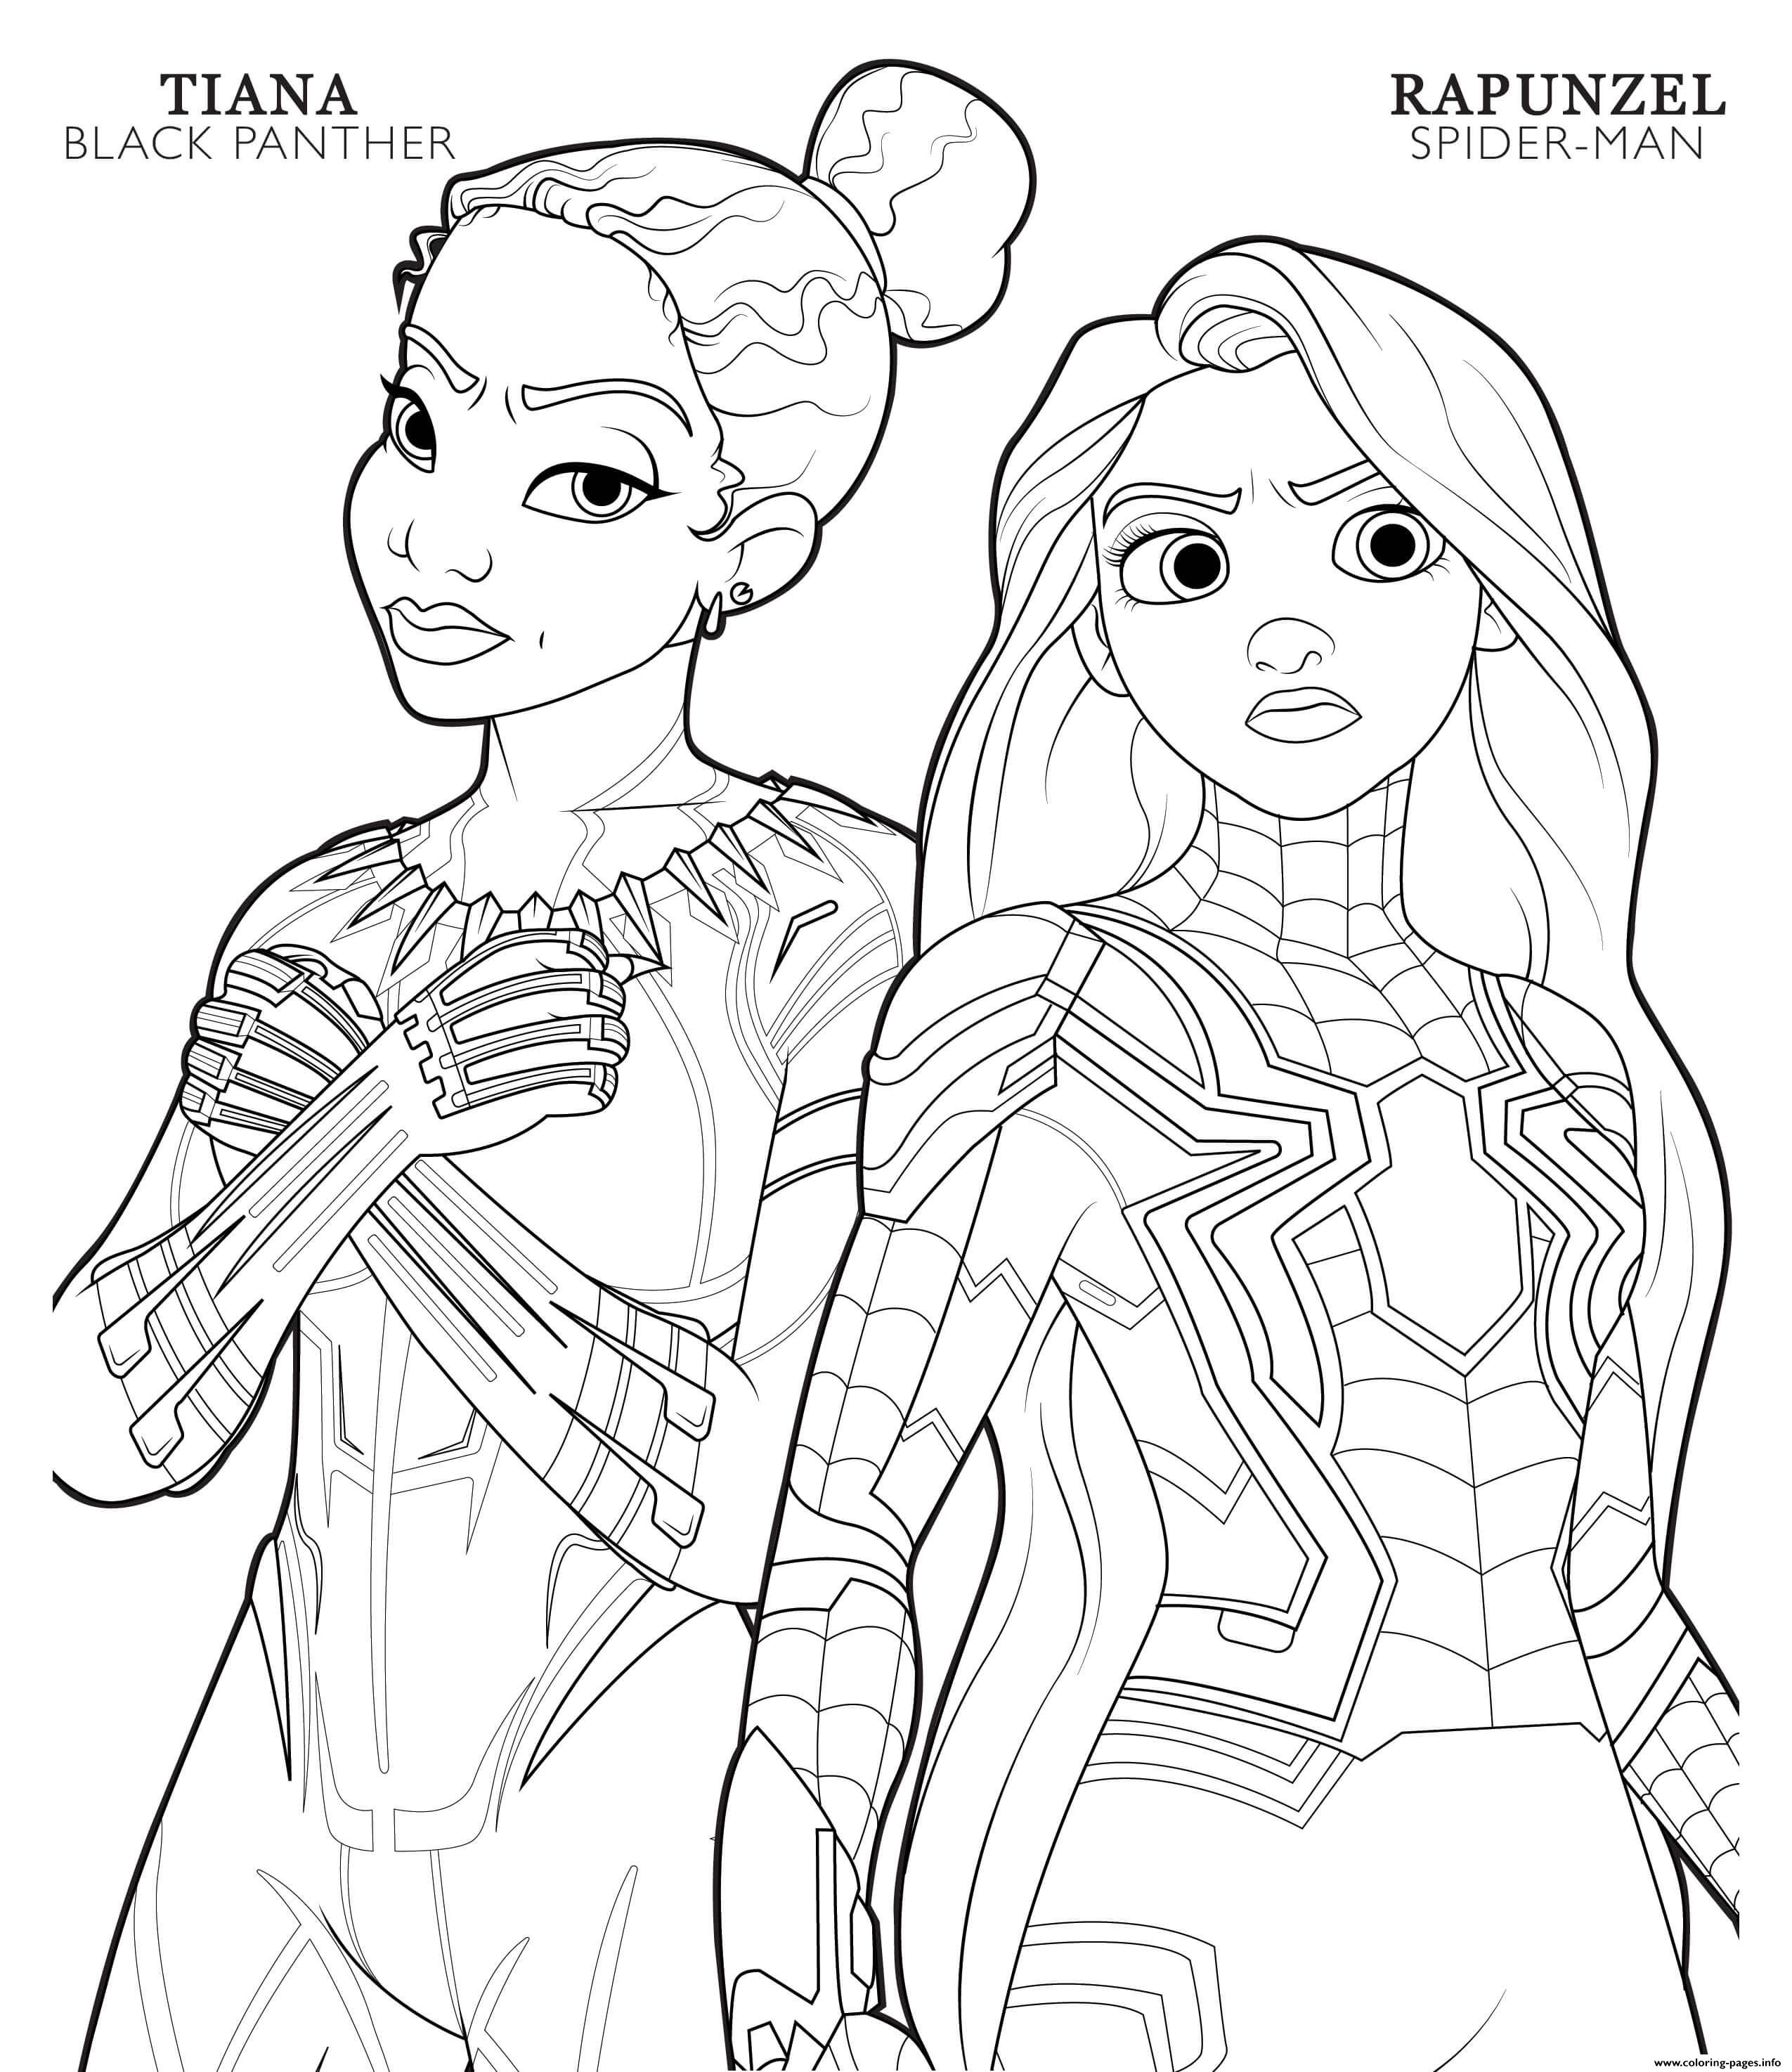 Black Panther Tiana And Spider Man Rapunzel Disney Avengers coloring pages